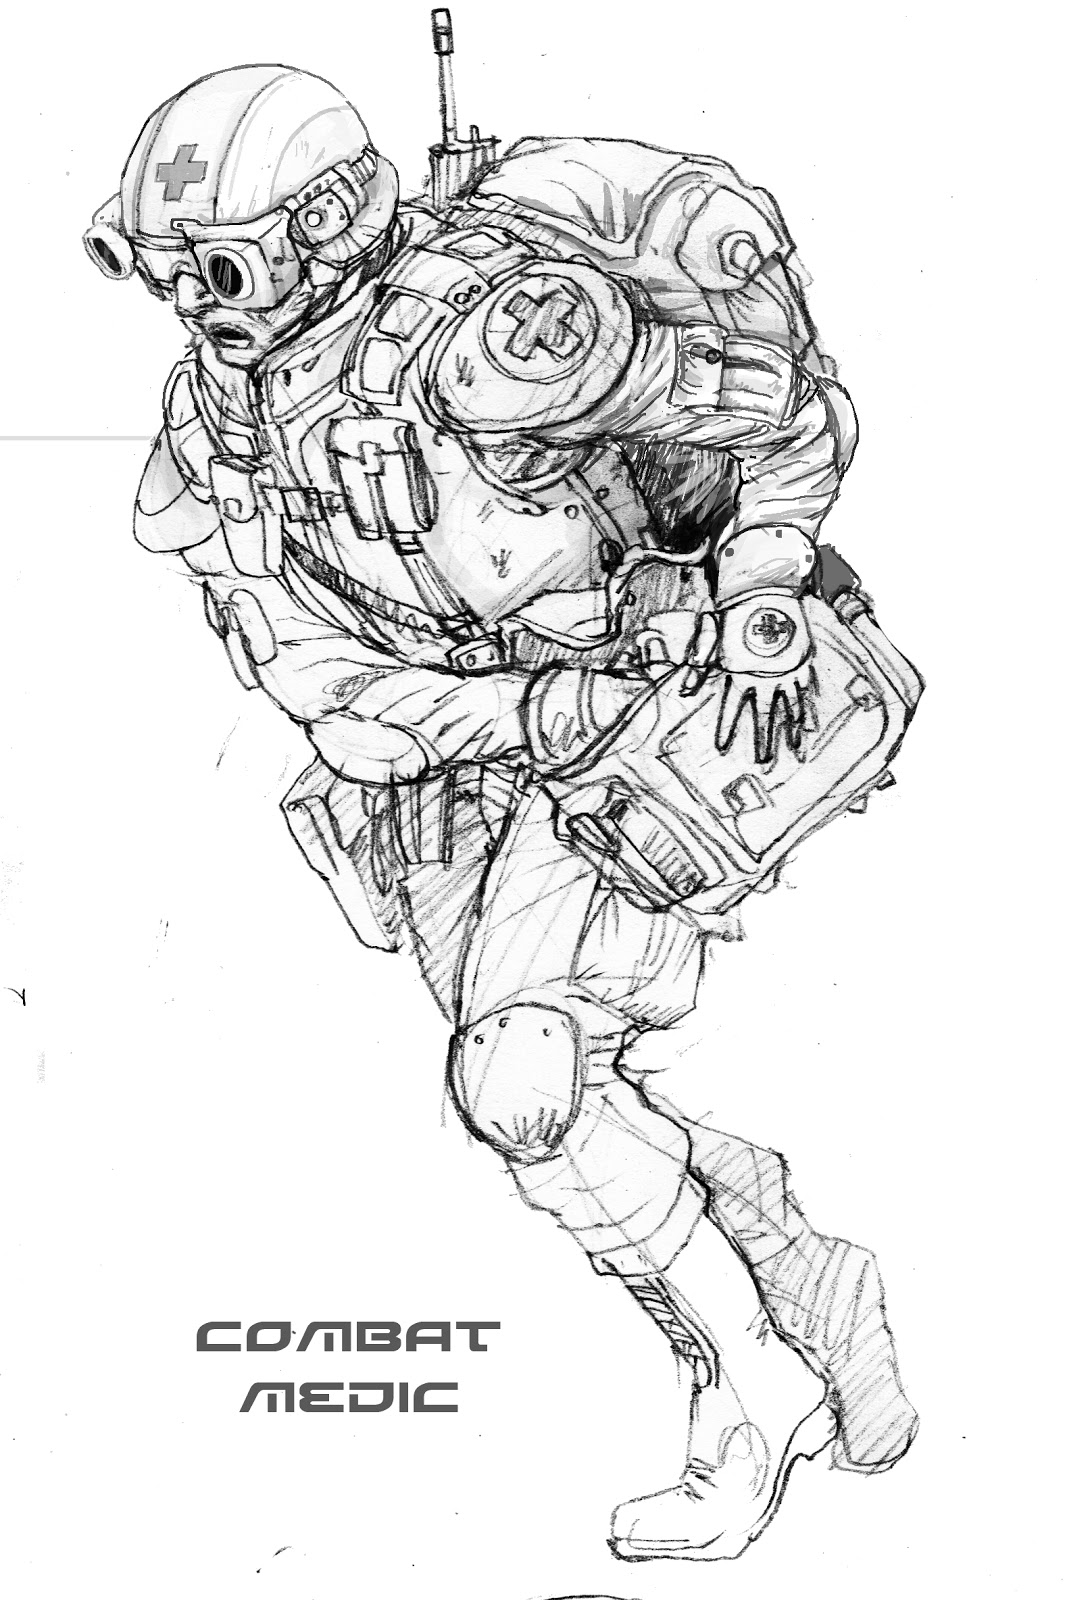 Armies Army: Updated Combat medic